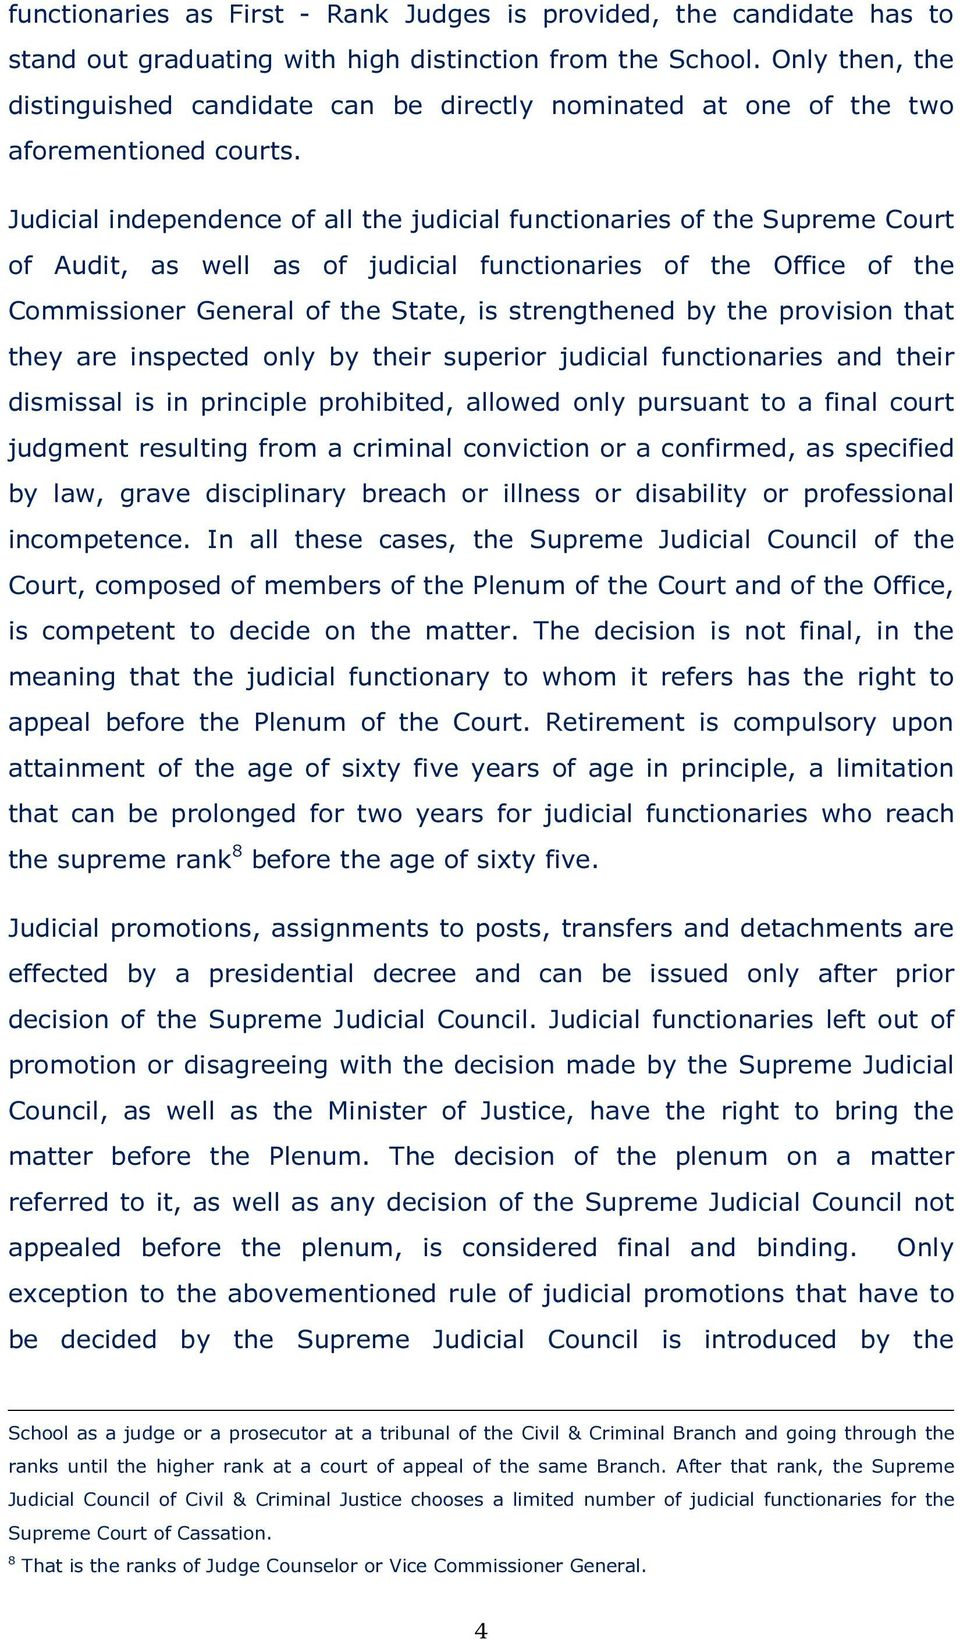 Judicial independence of all the judicial functionaries of the Supreme Court of Audit, as well as of judicial functionaries of the Office of the Commissioner General of the State, is strengthened by